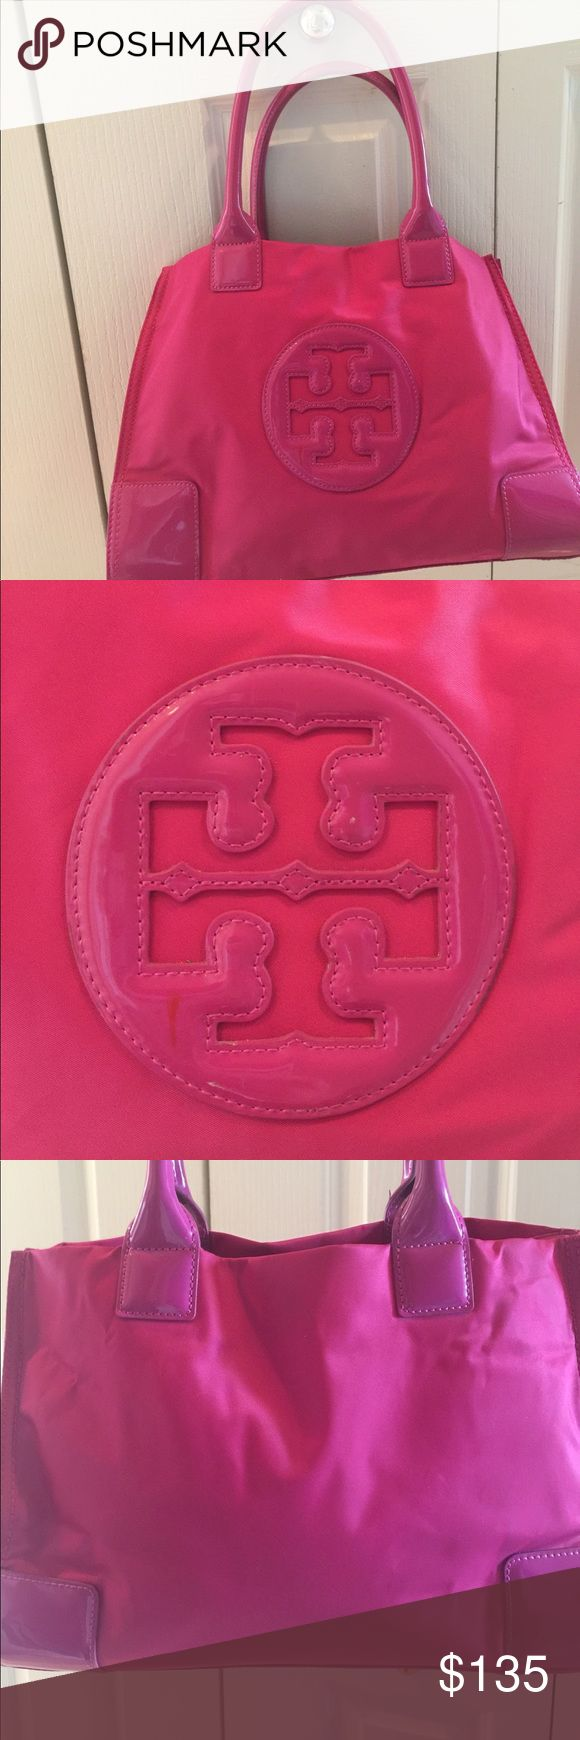 Tory Burch Ella Nylon tote Tory Burch colorblock nylon tote with faux-leather (PVC) trim. Rolled top handles, 7 drop. Open top. Logo applique at center. Snap sides expand bag. Interior, logo-jacquard lining; one zip and one slip pocket. 13H x 17W x 5D. Mine is very gently used.  No visible marks at all !! Buy at listed price or make an offer.  Bright pink tote goes with everything!!! Tory Burch Bags Totes